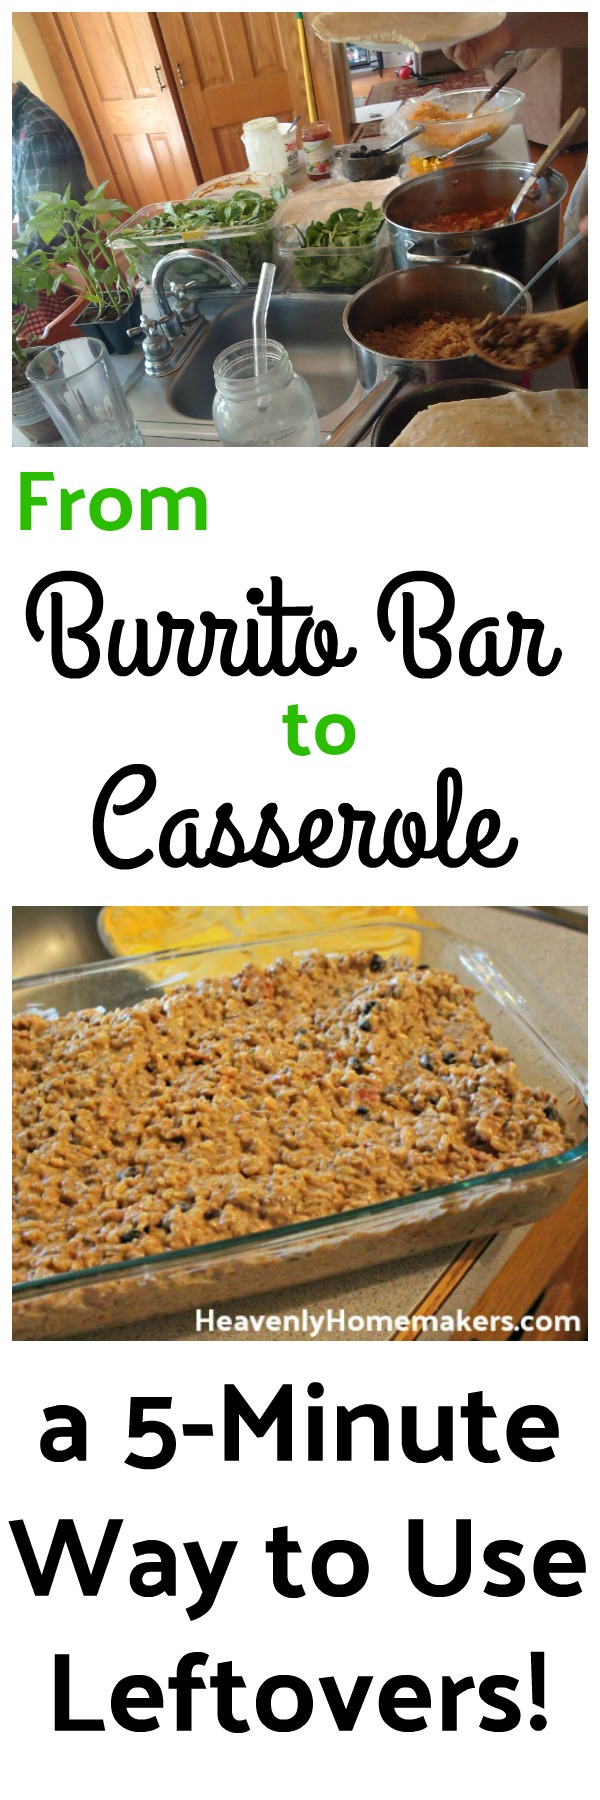 From Burrito to Casserole - a 5 minute way to use leftovers